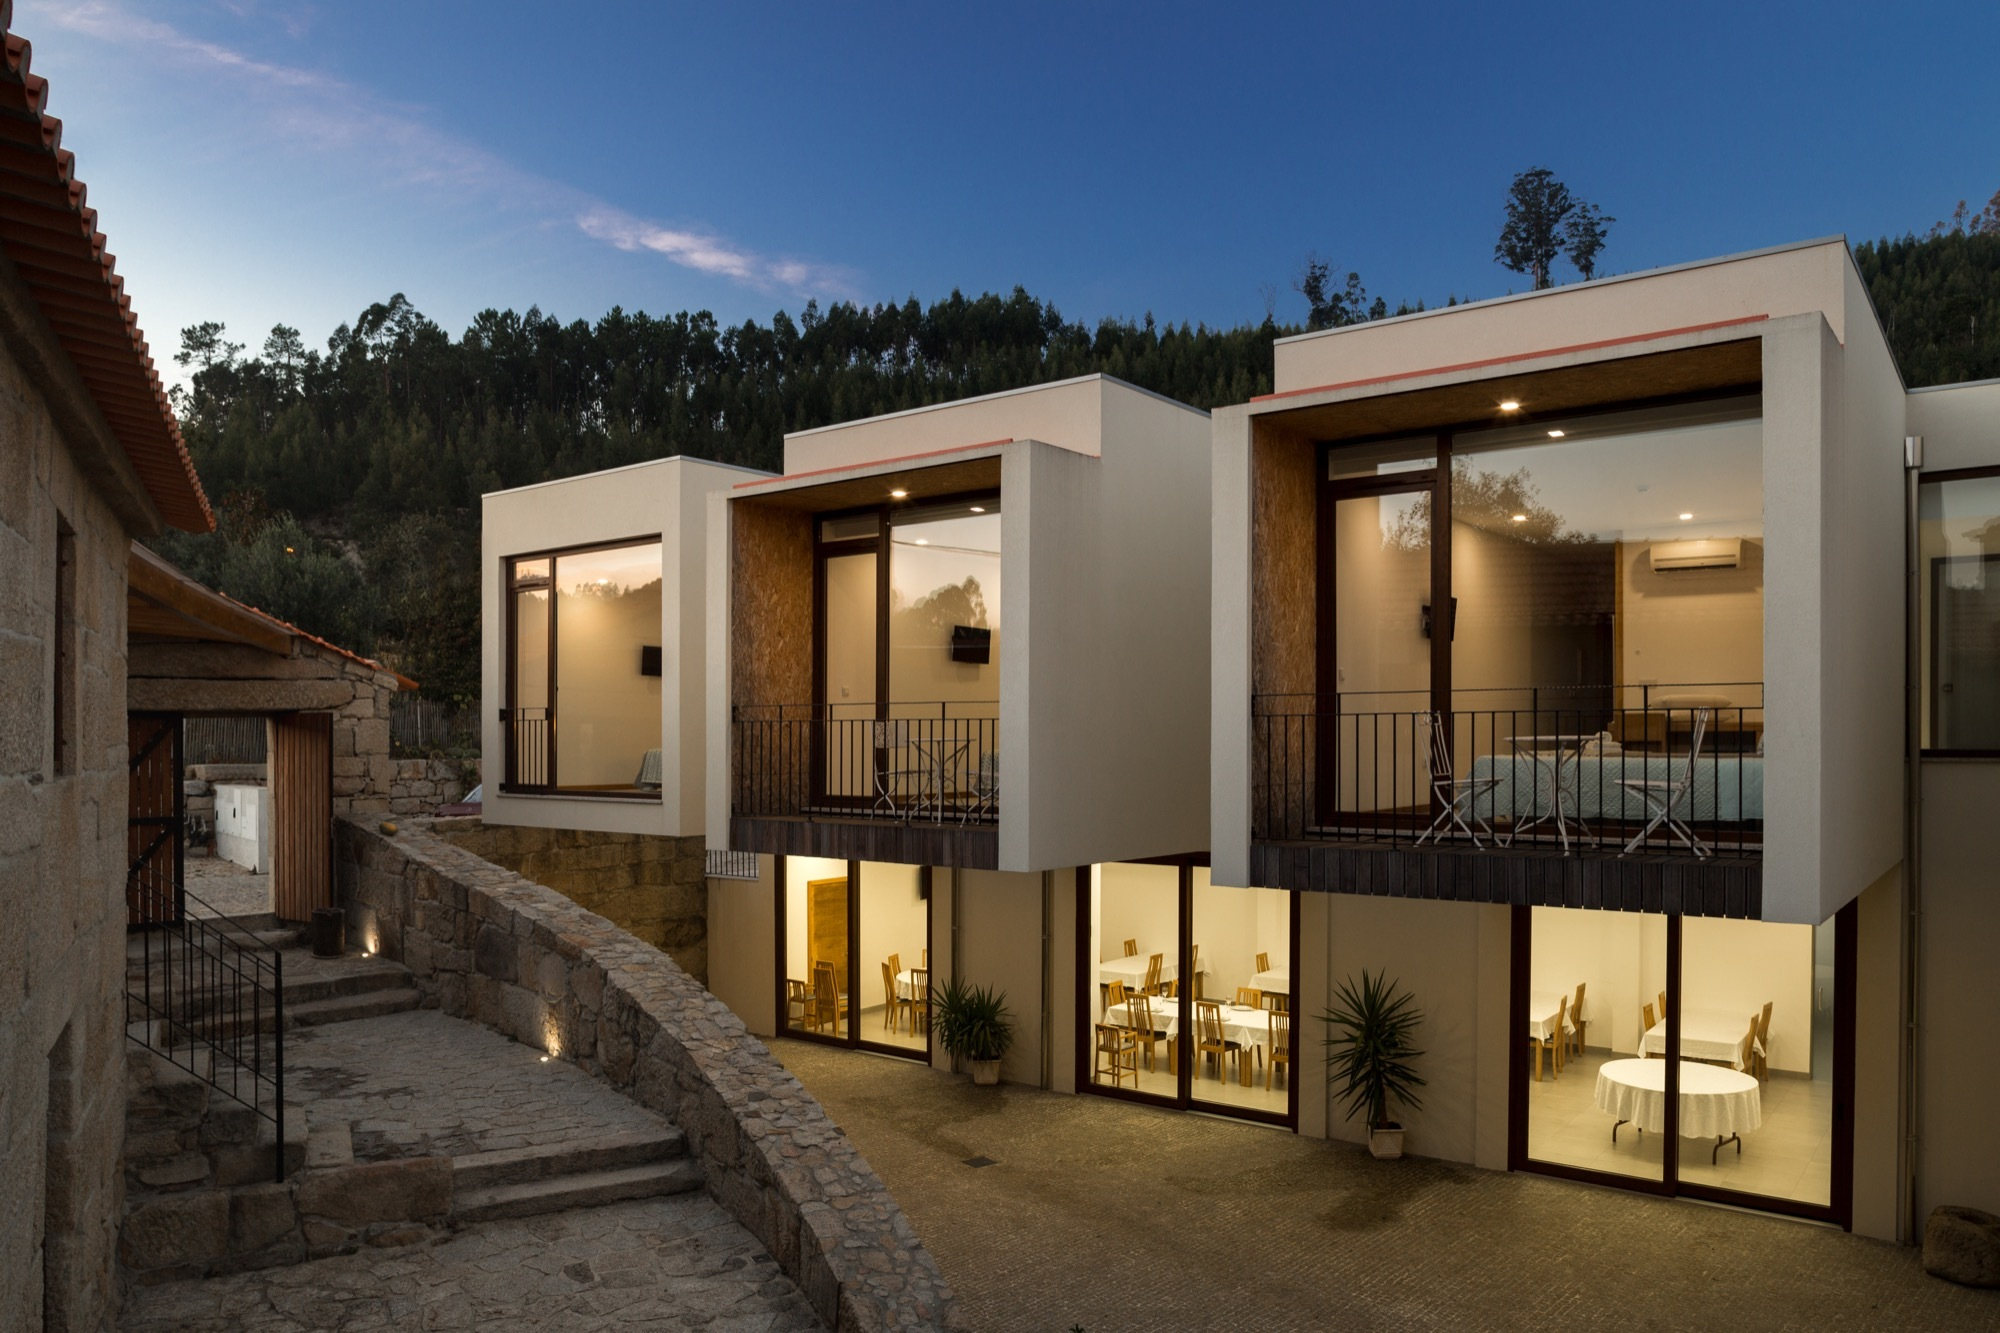 Galeria de hotel rural r mulo neto 1 for Design boutique hotels slowenien